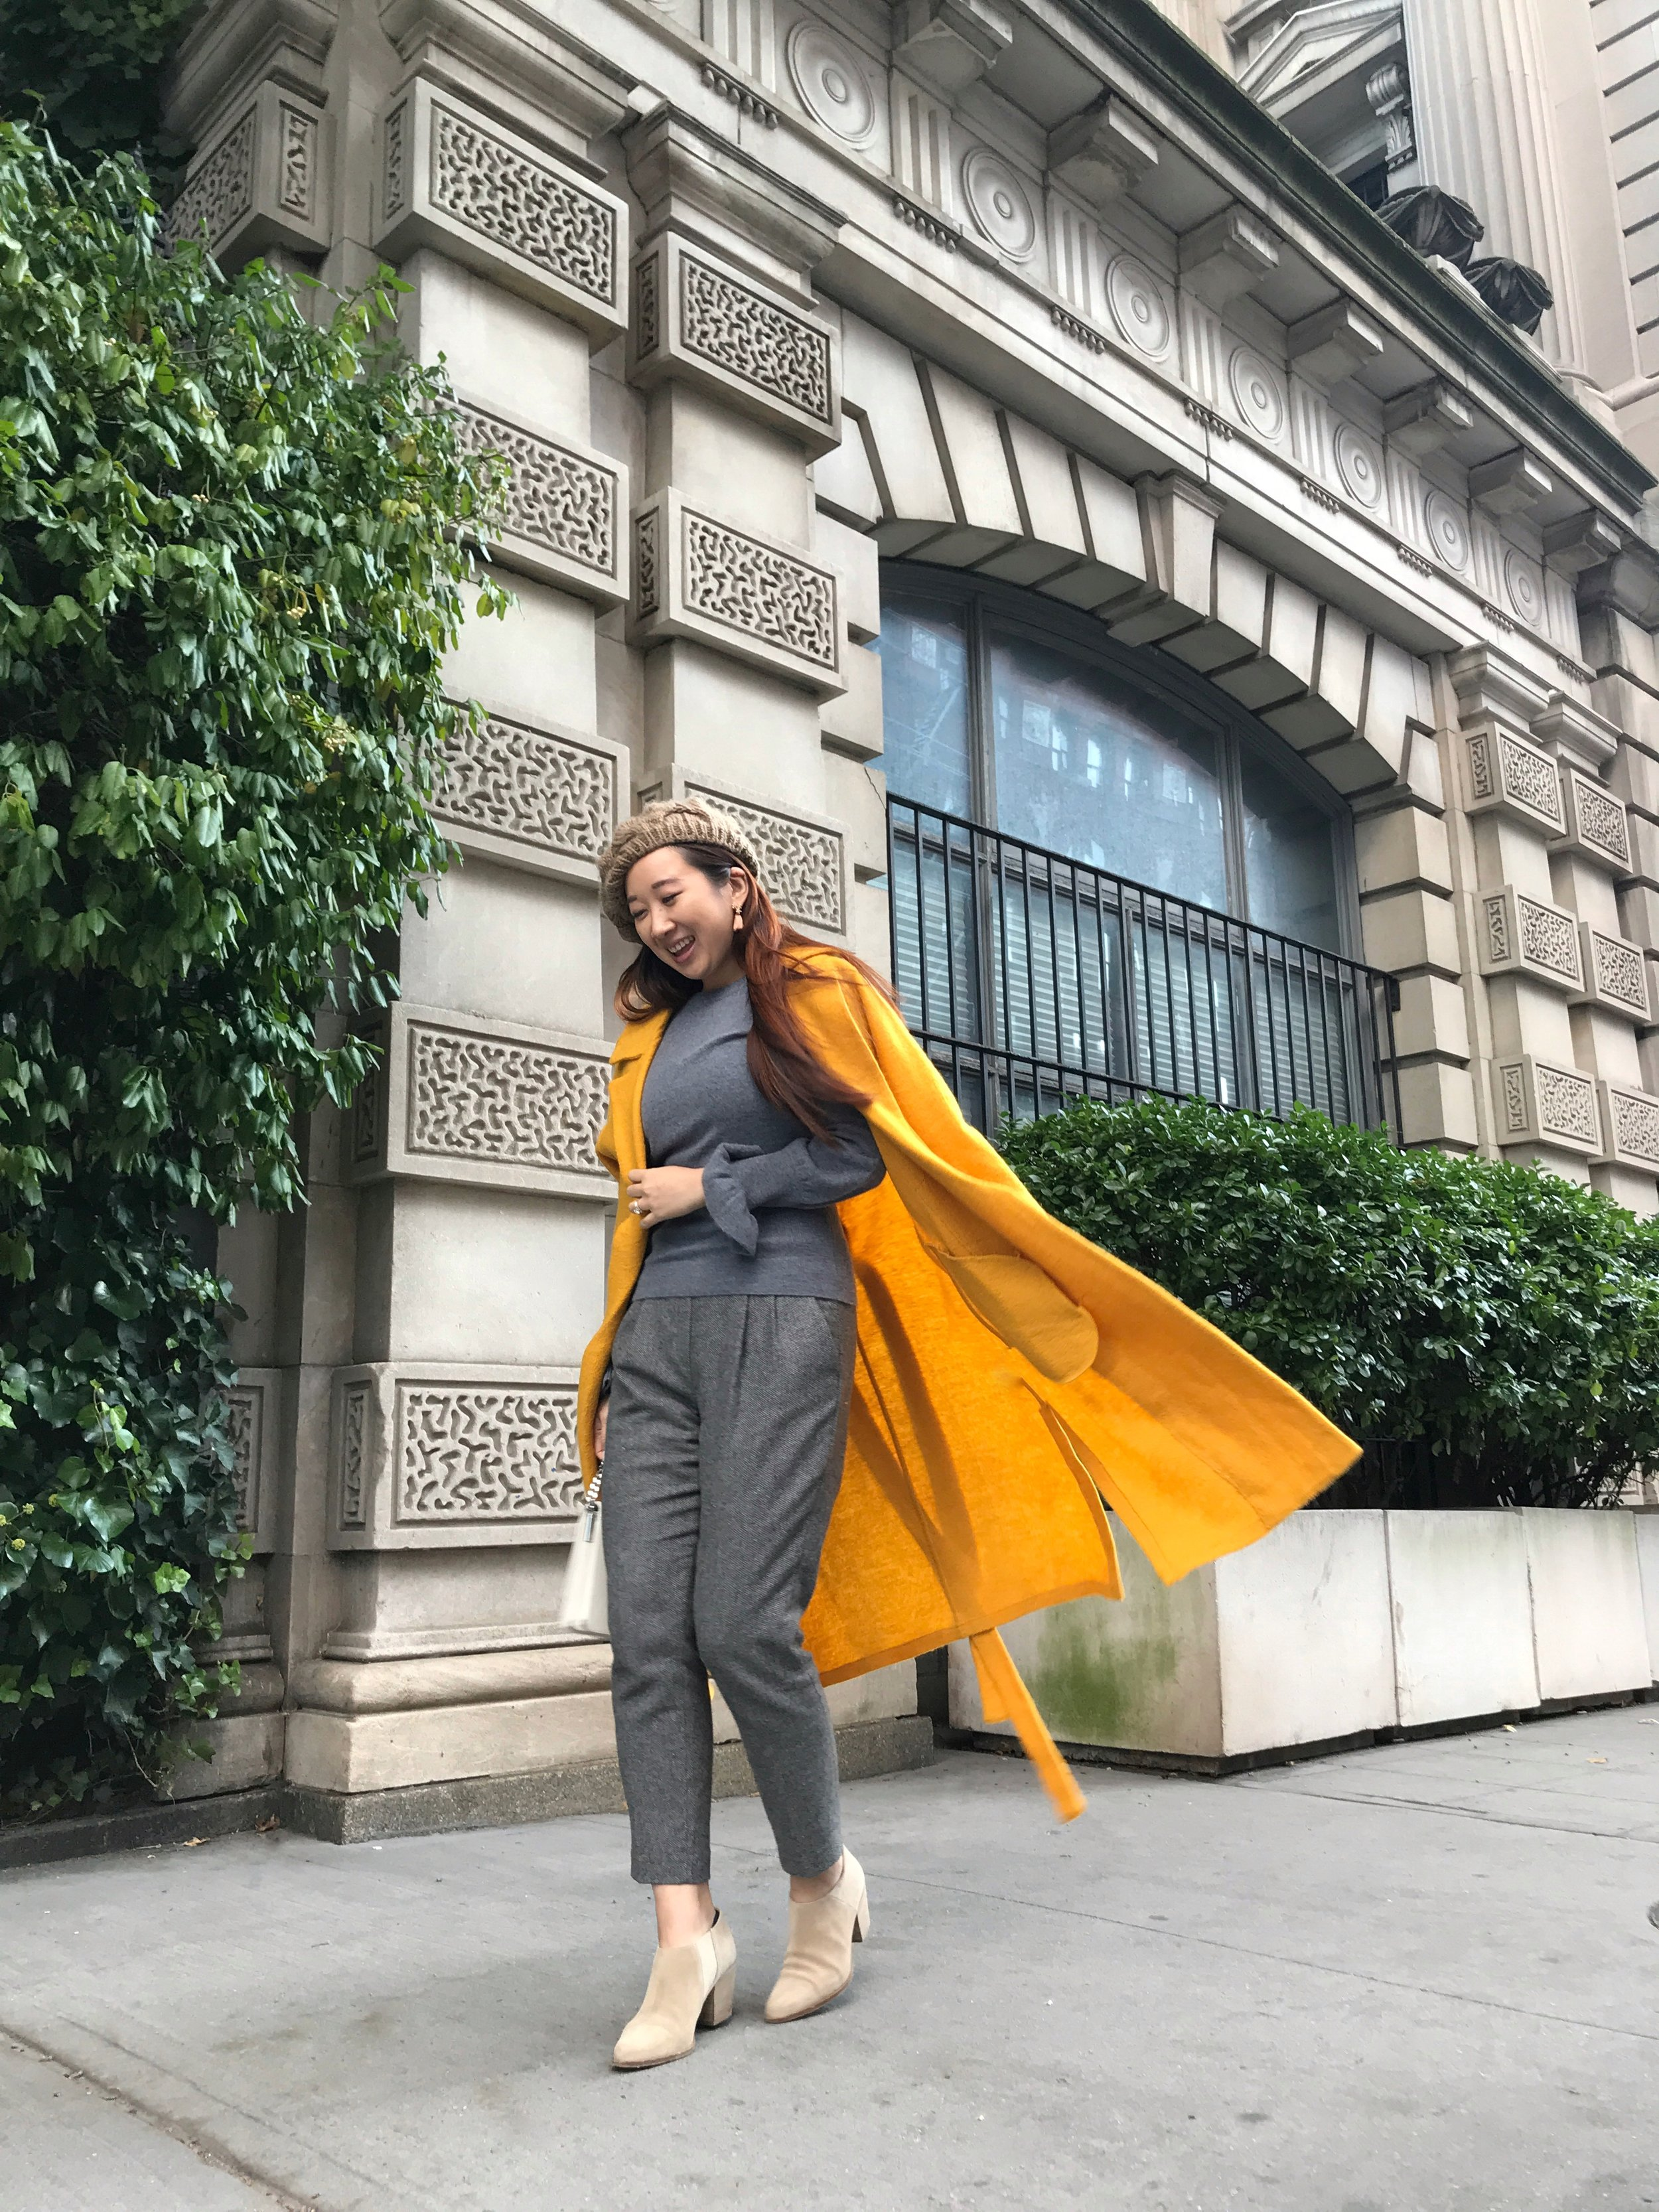 Monochrome + A Pop of Color - When in doubt, or short on time in the morning, just go for the same color from head to toe, because you can never go wrong with monochromatic outfits!I paired the sweater over my grey wool pants, and to add a pop of color, I reached for a yellow coat.